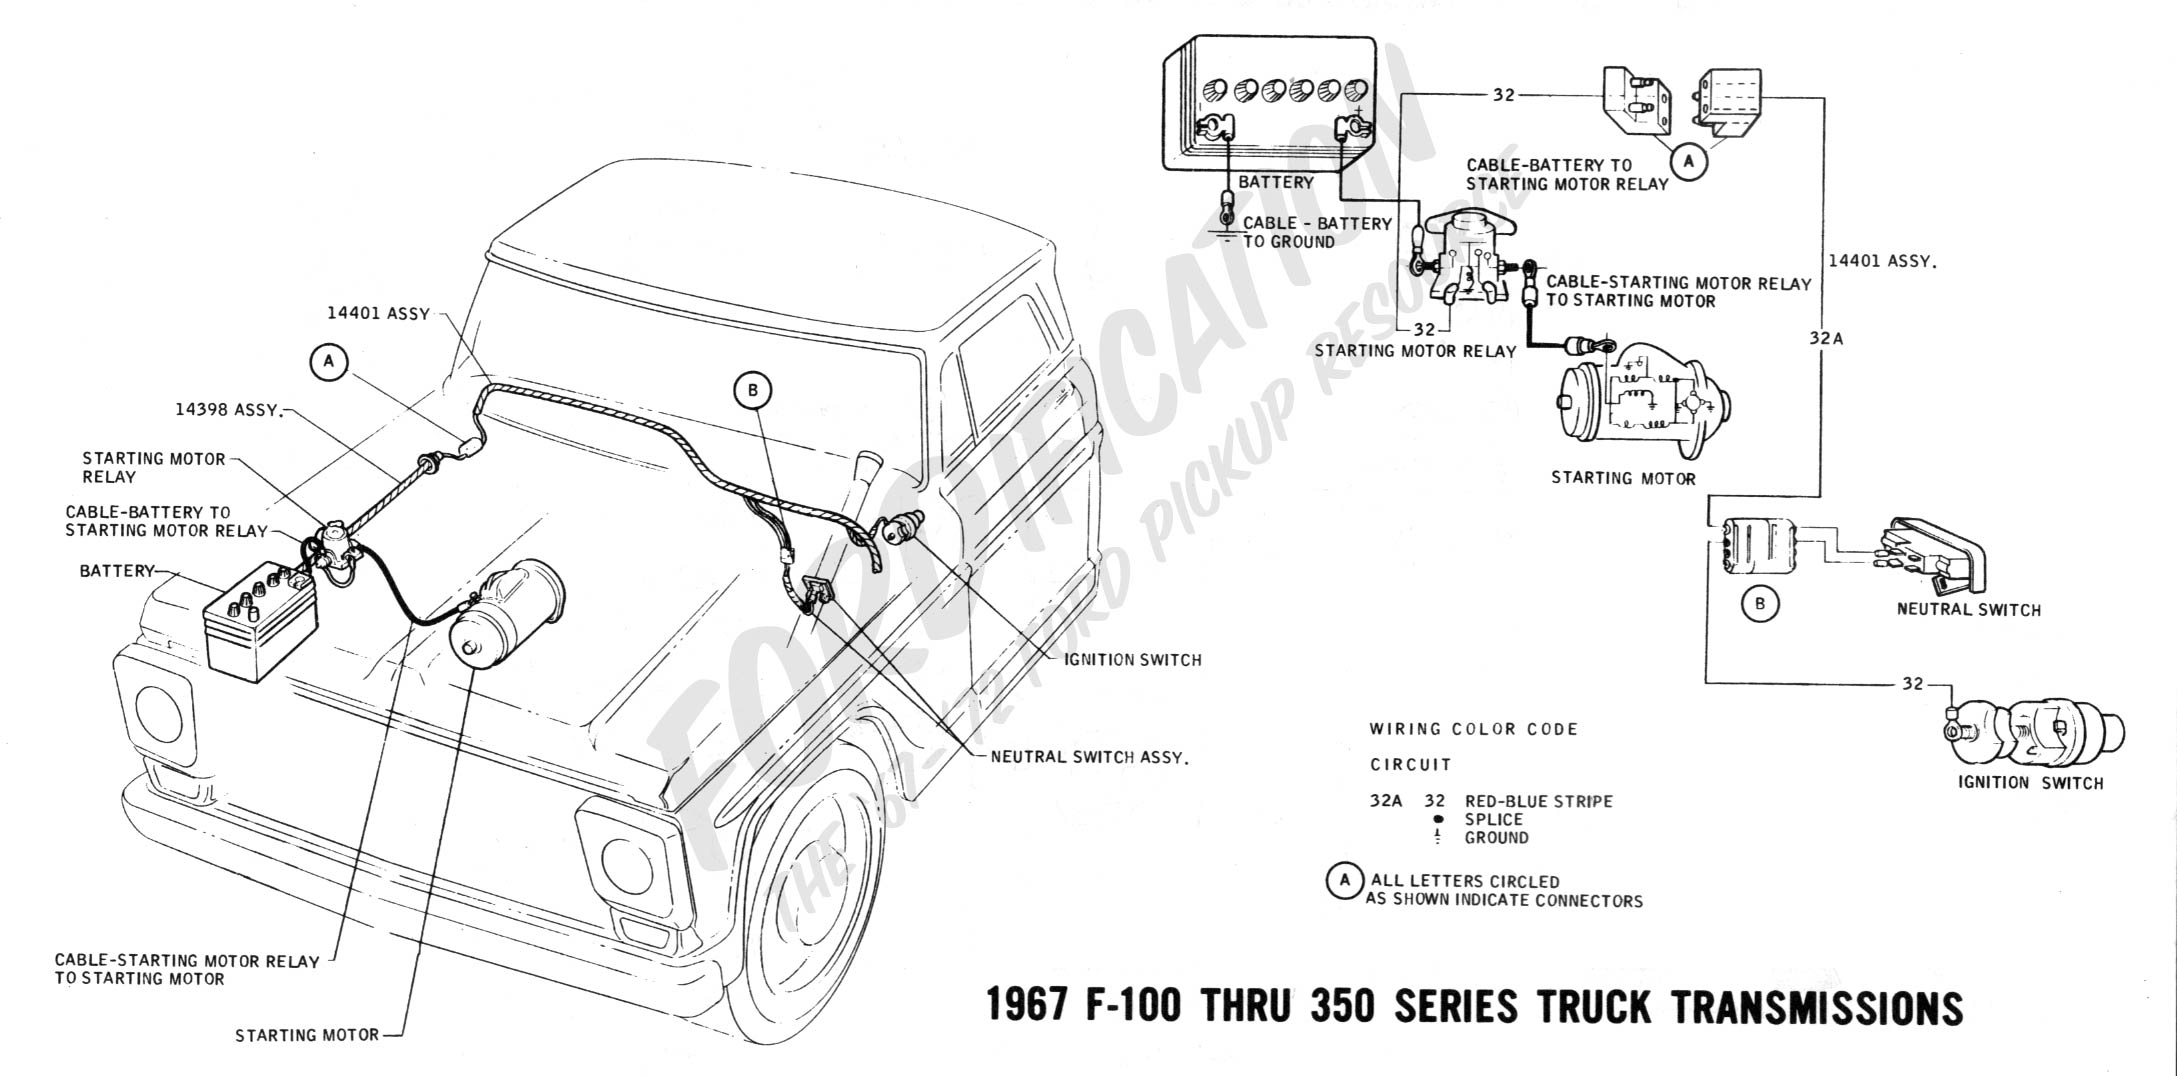 ford truck technical drawings and schematics section h 2013 Chevy Impala  Window Heater Wiring Diagram Chevy 1500 Wiring Diagram